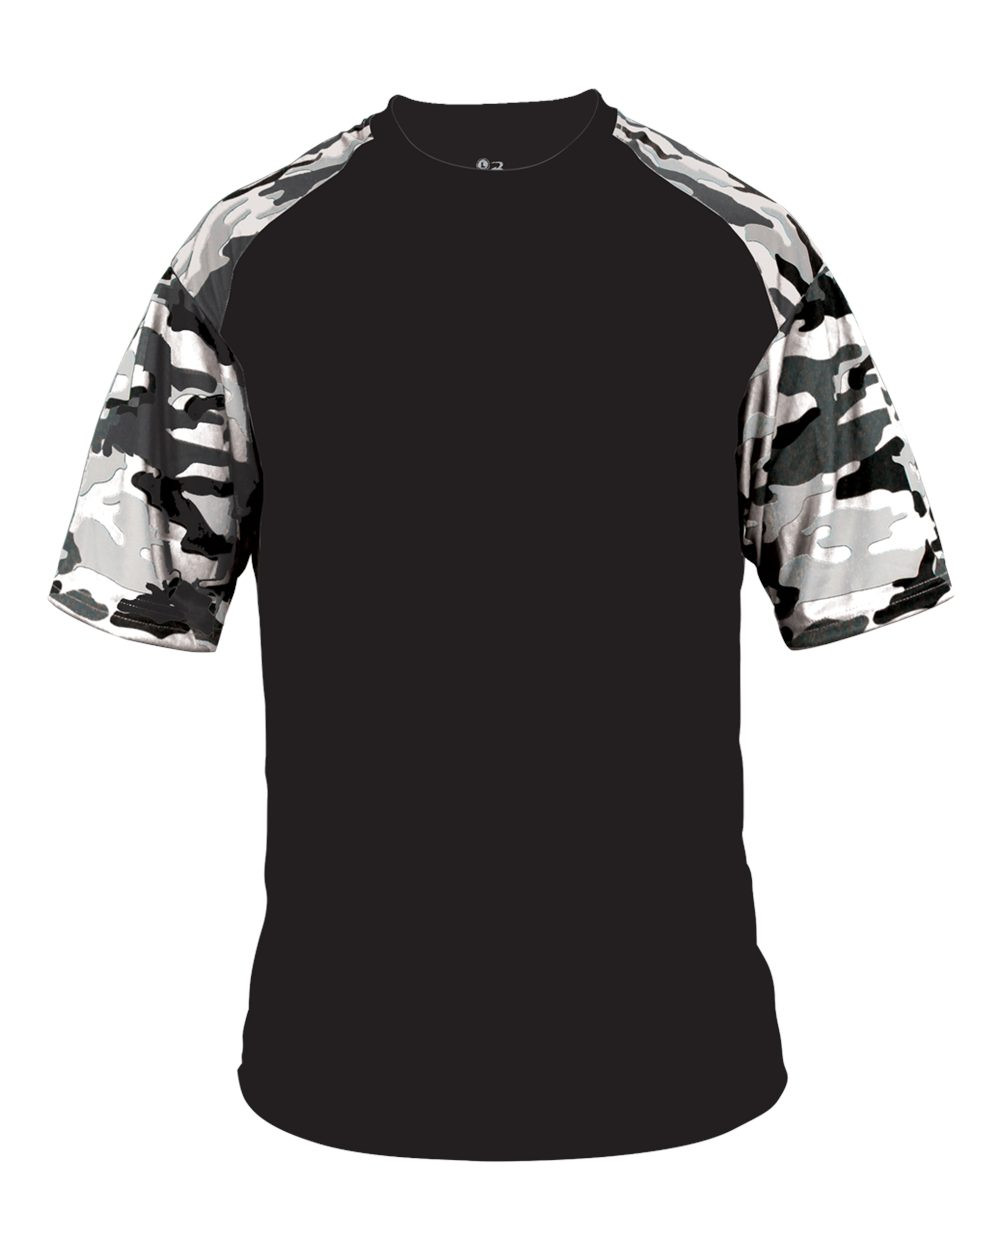 Badger Men's Camo Sports Tee - Black